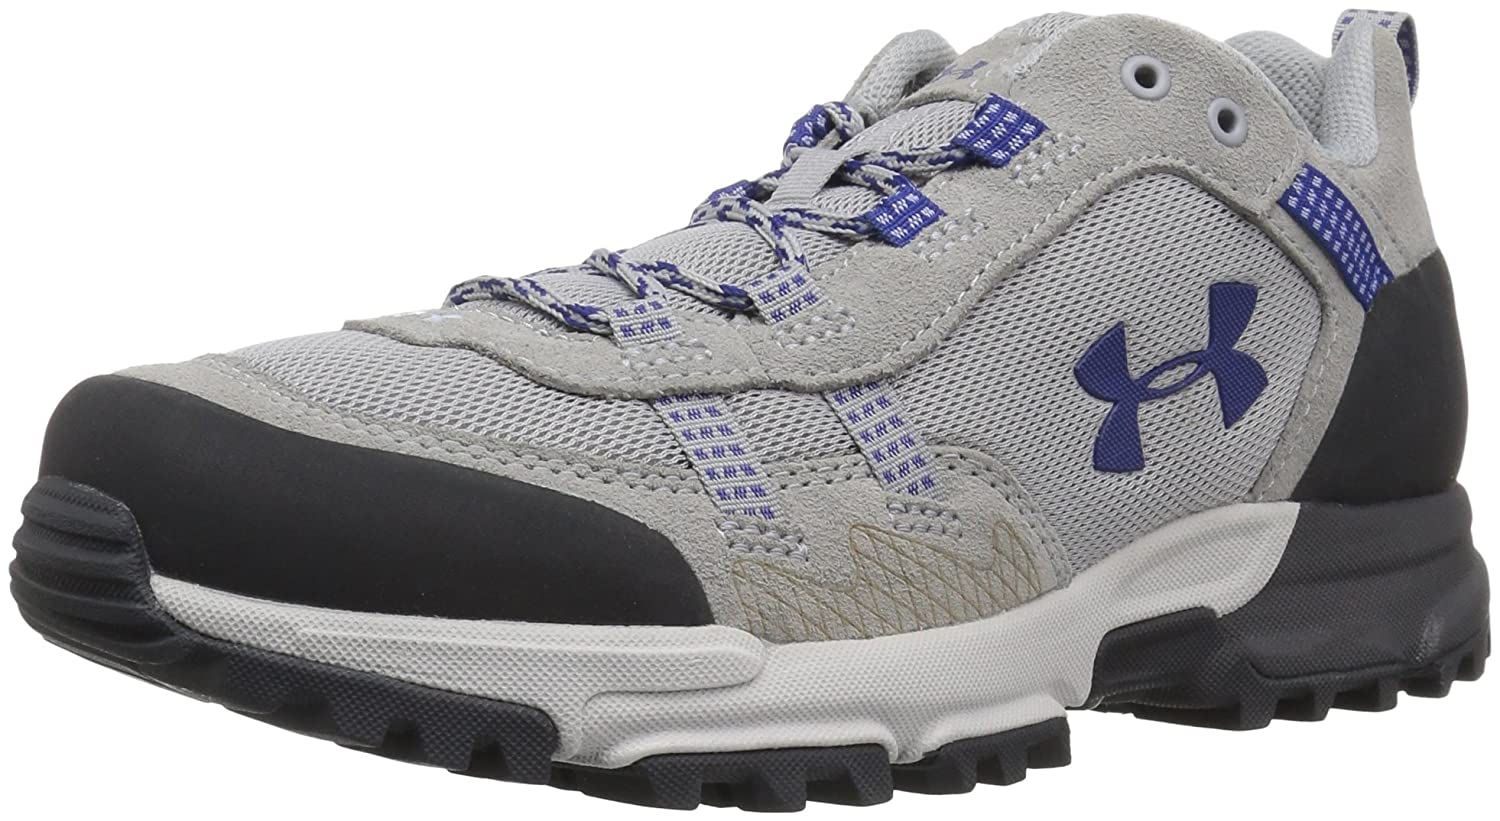 Under Armour Women's Post Canyon Low Hiking Boot B076SM8C17 8.5 M US|Gray